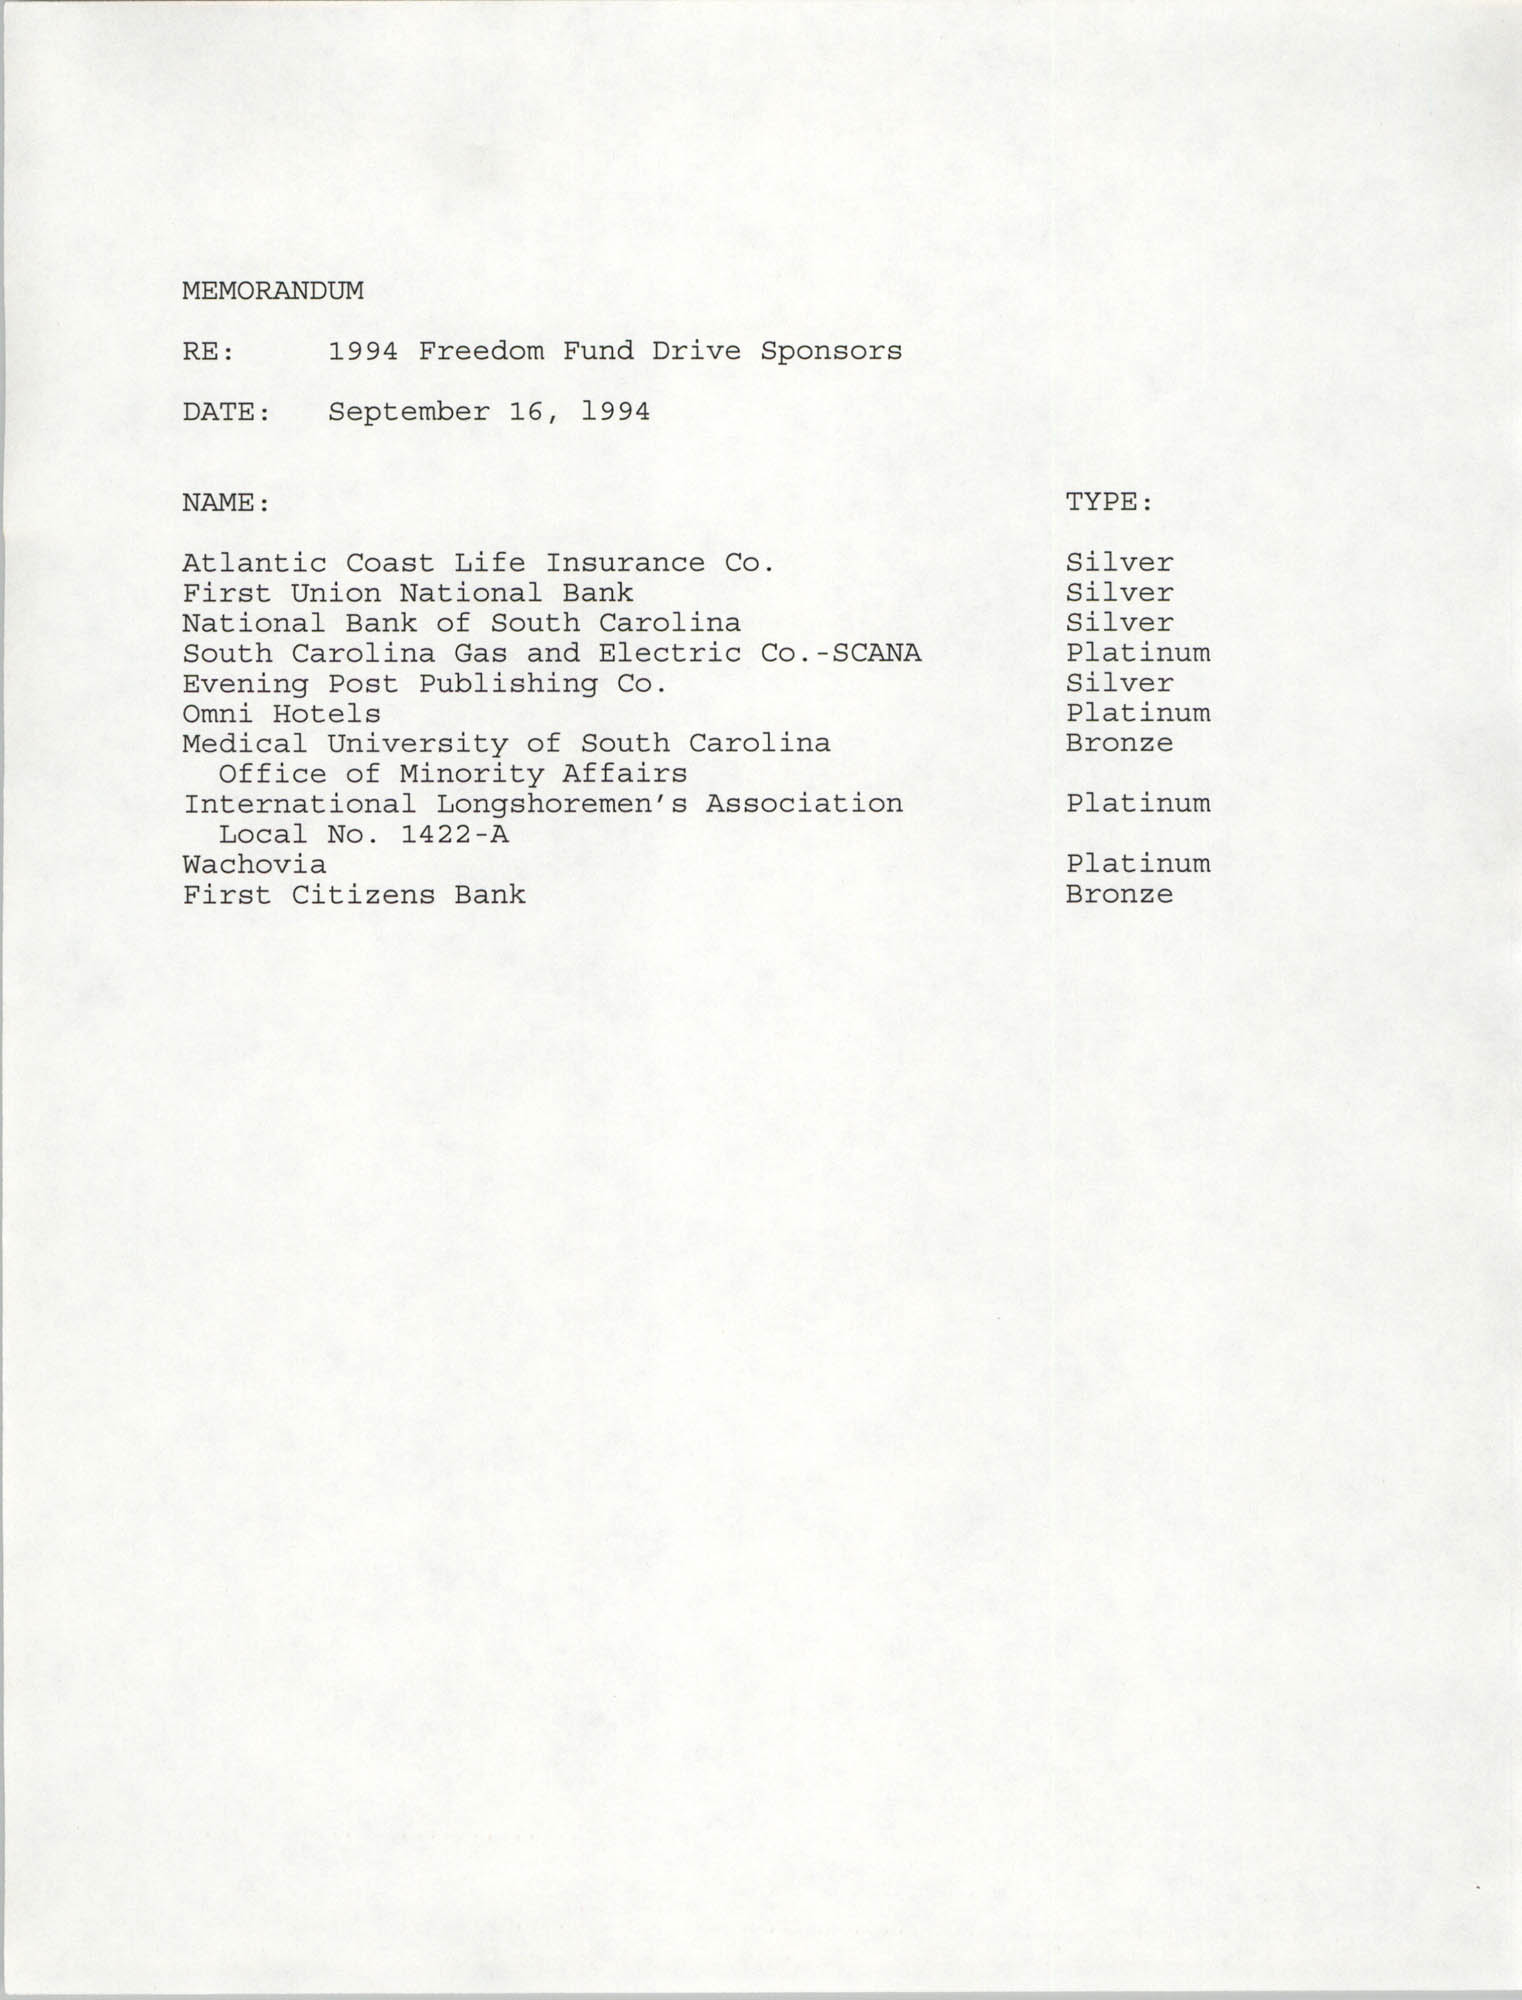 Charleston Branch NAACP Memorandum, September 16, 1994